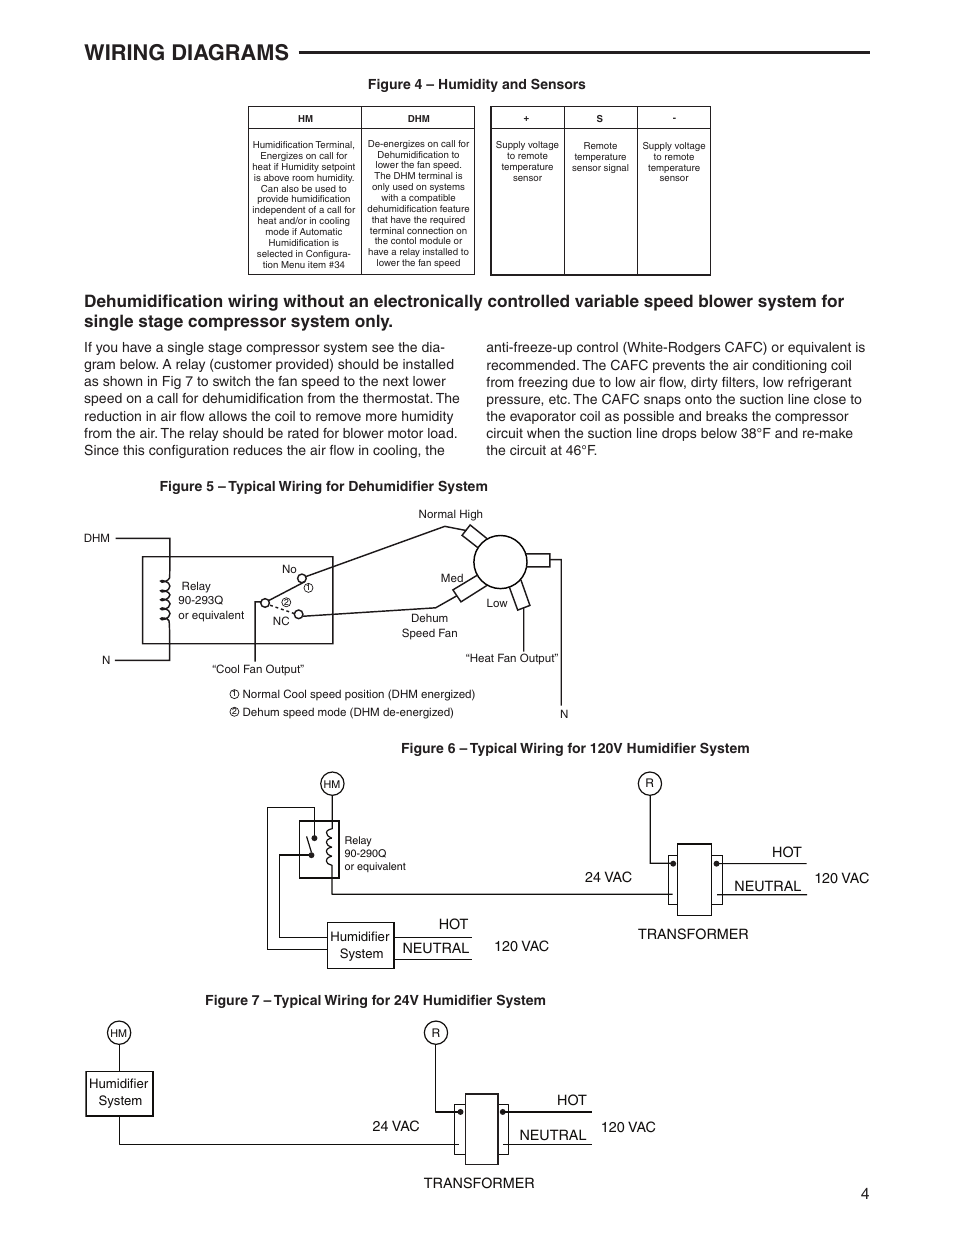 hight resolution of wiring diagrams white rodgers 1f95 1291 user manual page 4 16white rodgers wiring diagram 5